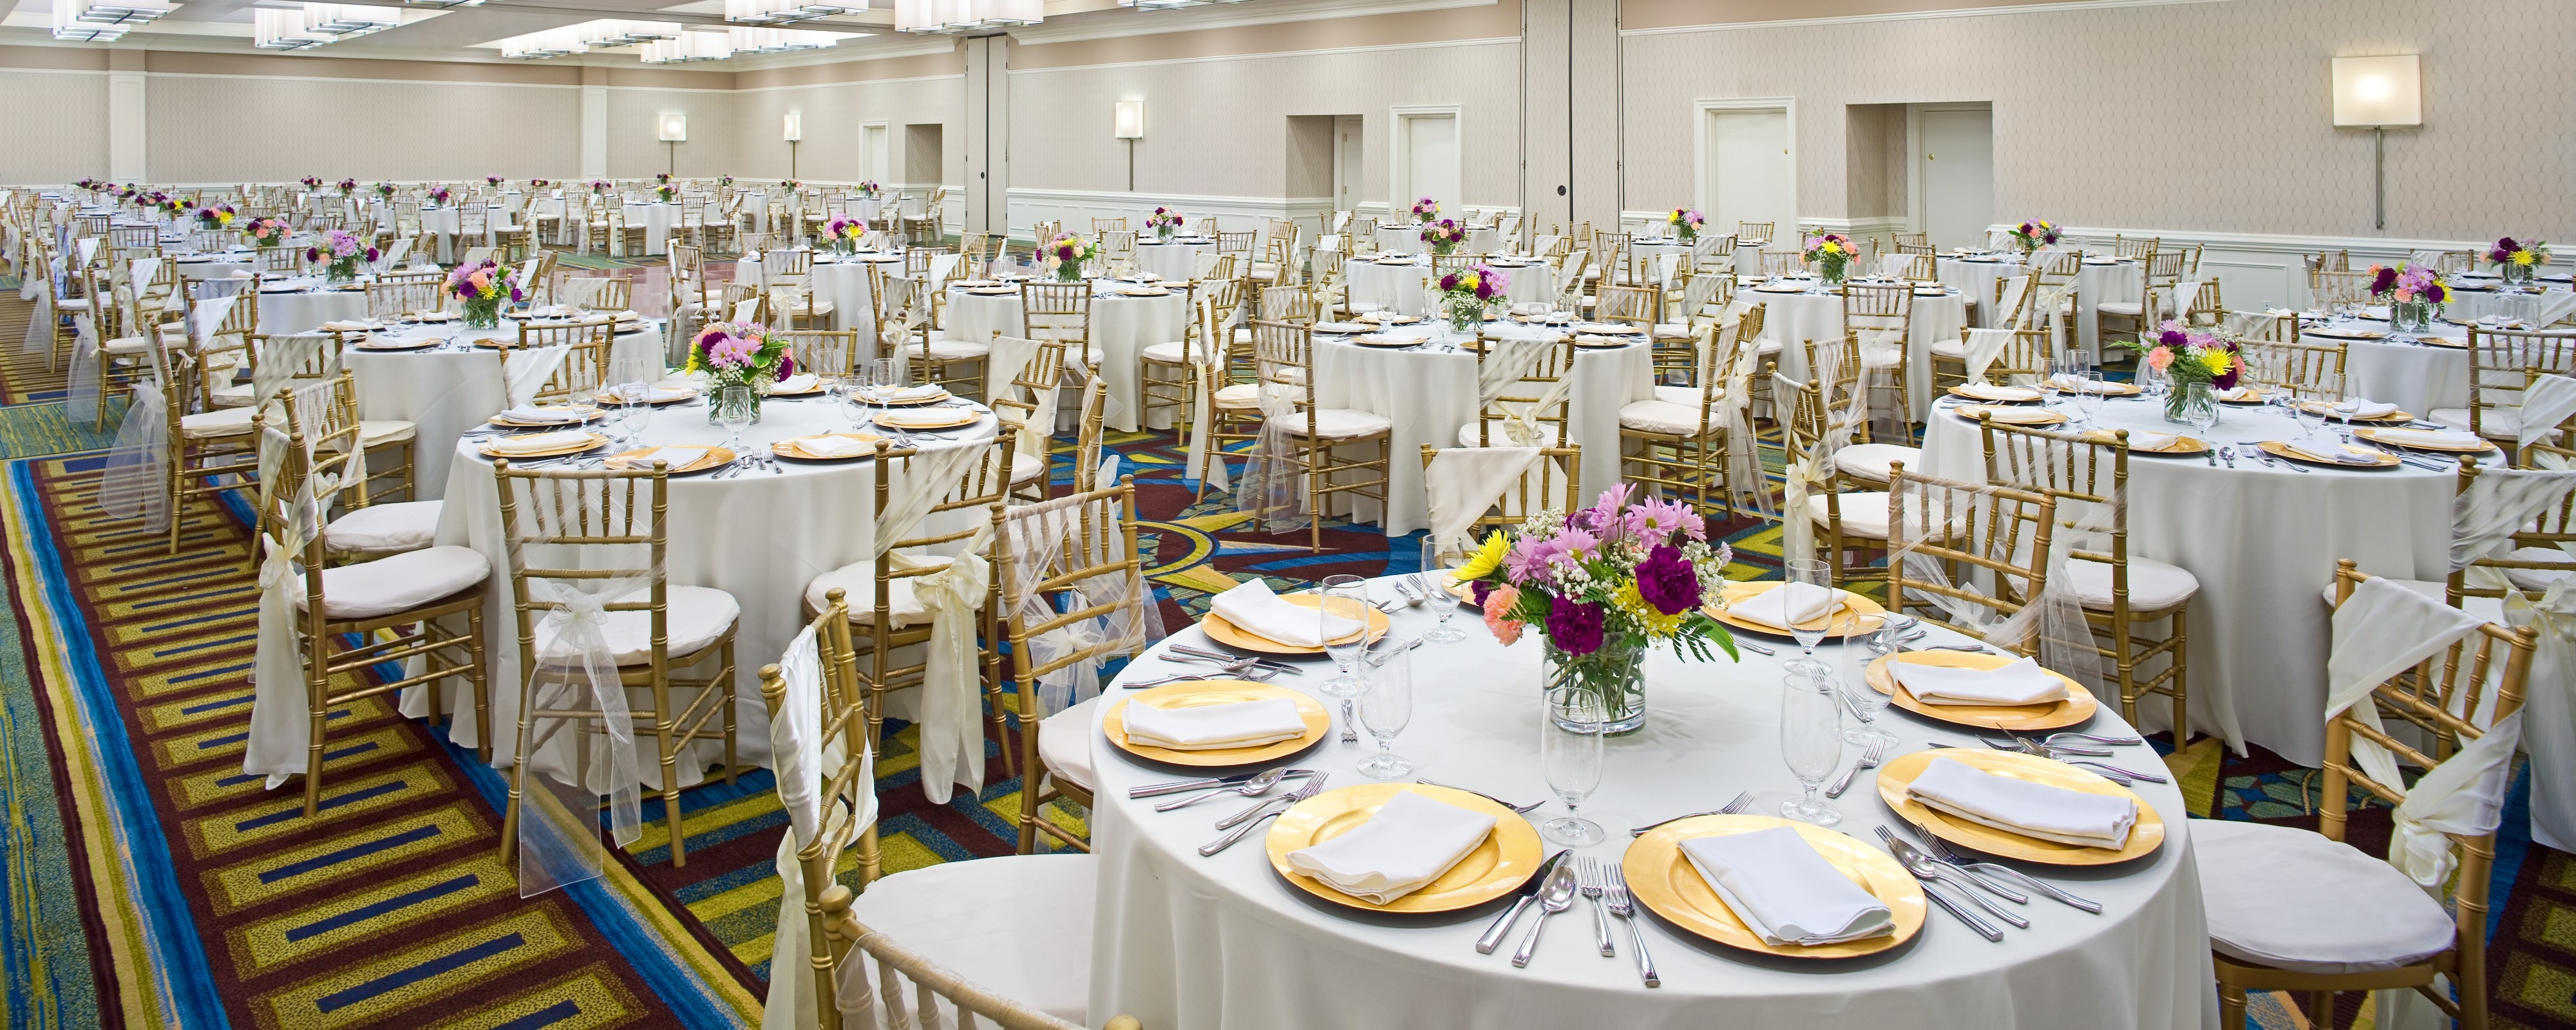 Wedding Venues On The Water Sheraton Virginia Beach Oceanfront Hotel